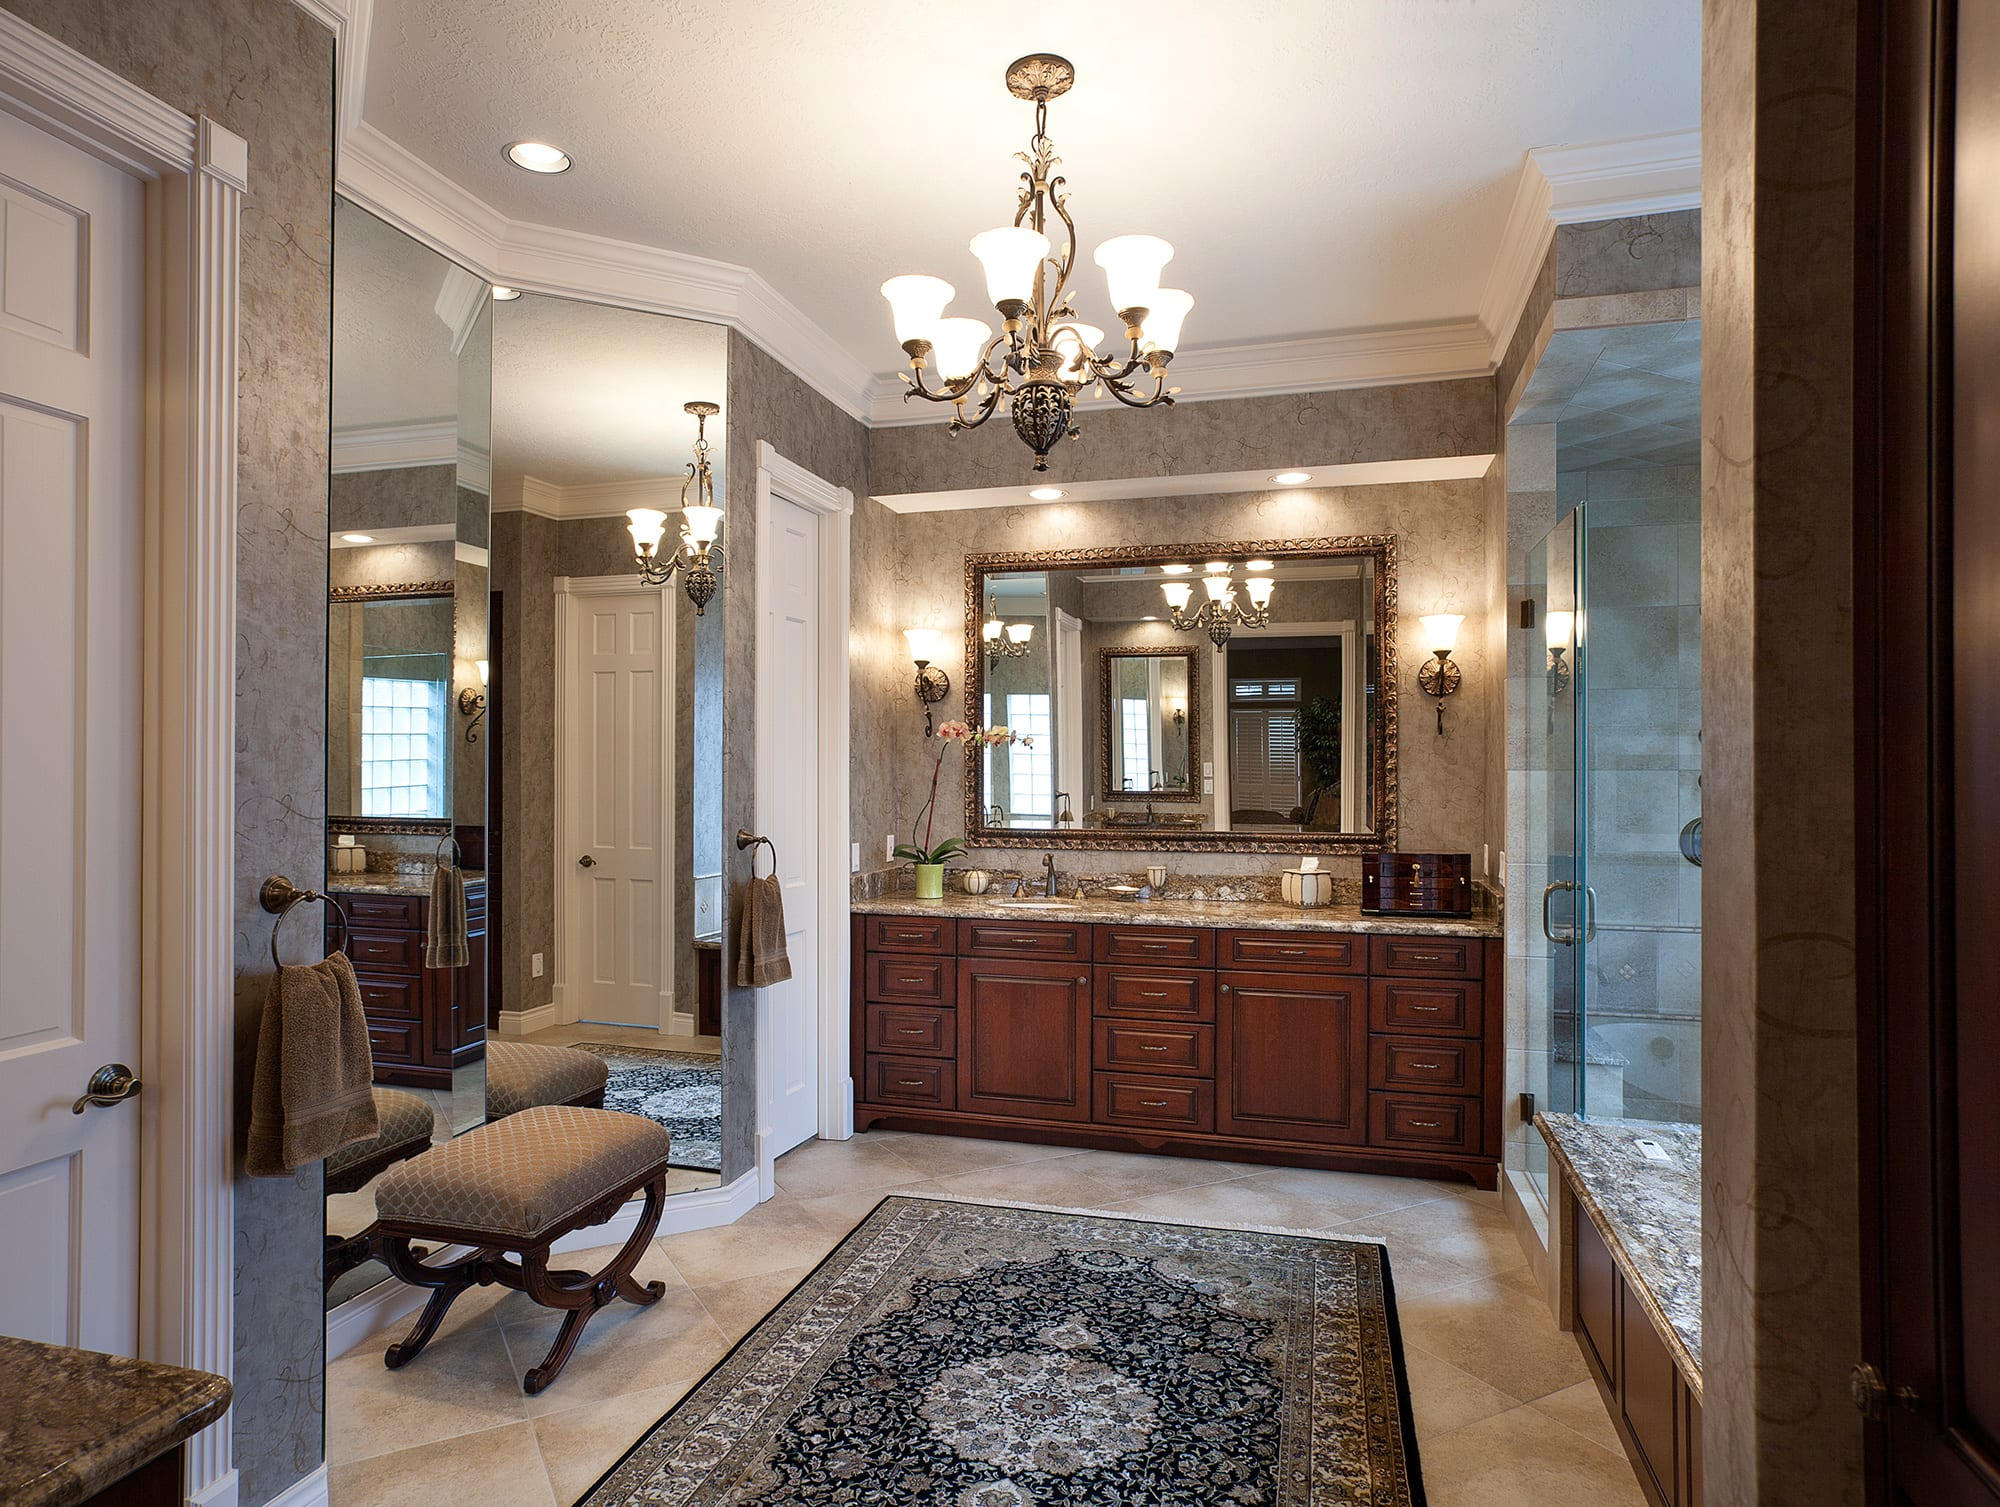 Cabinet innovations bathroom cabinets gallery images for What s new in bathrooms 2015